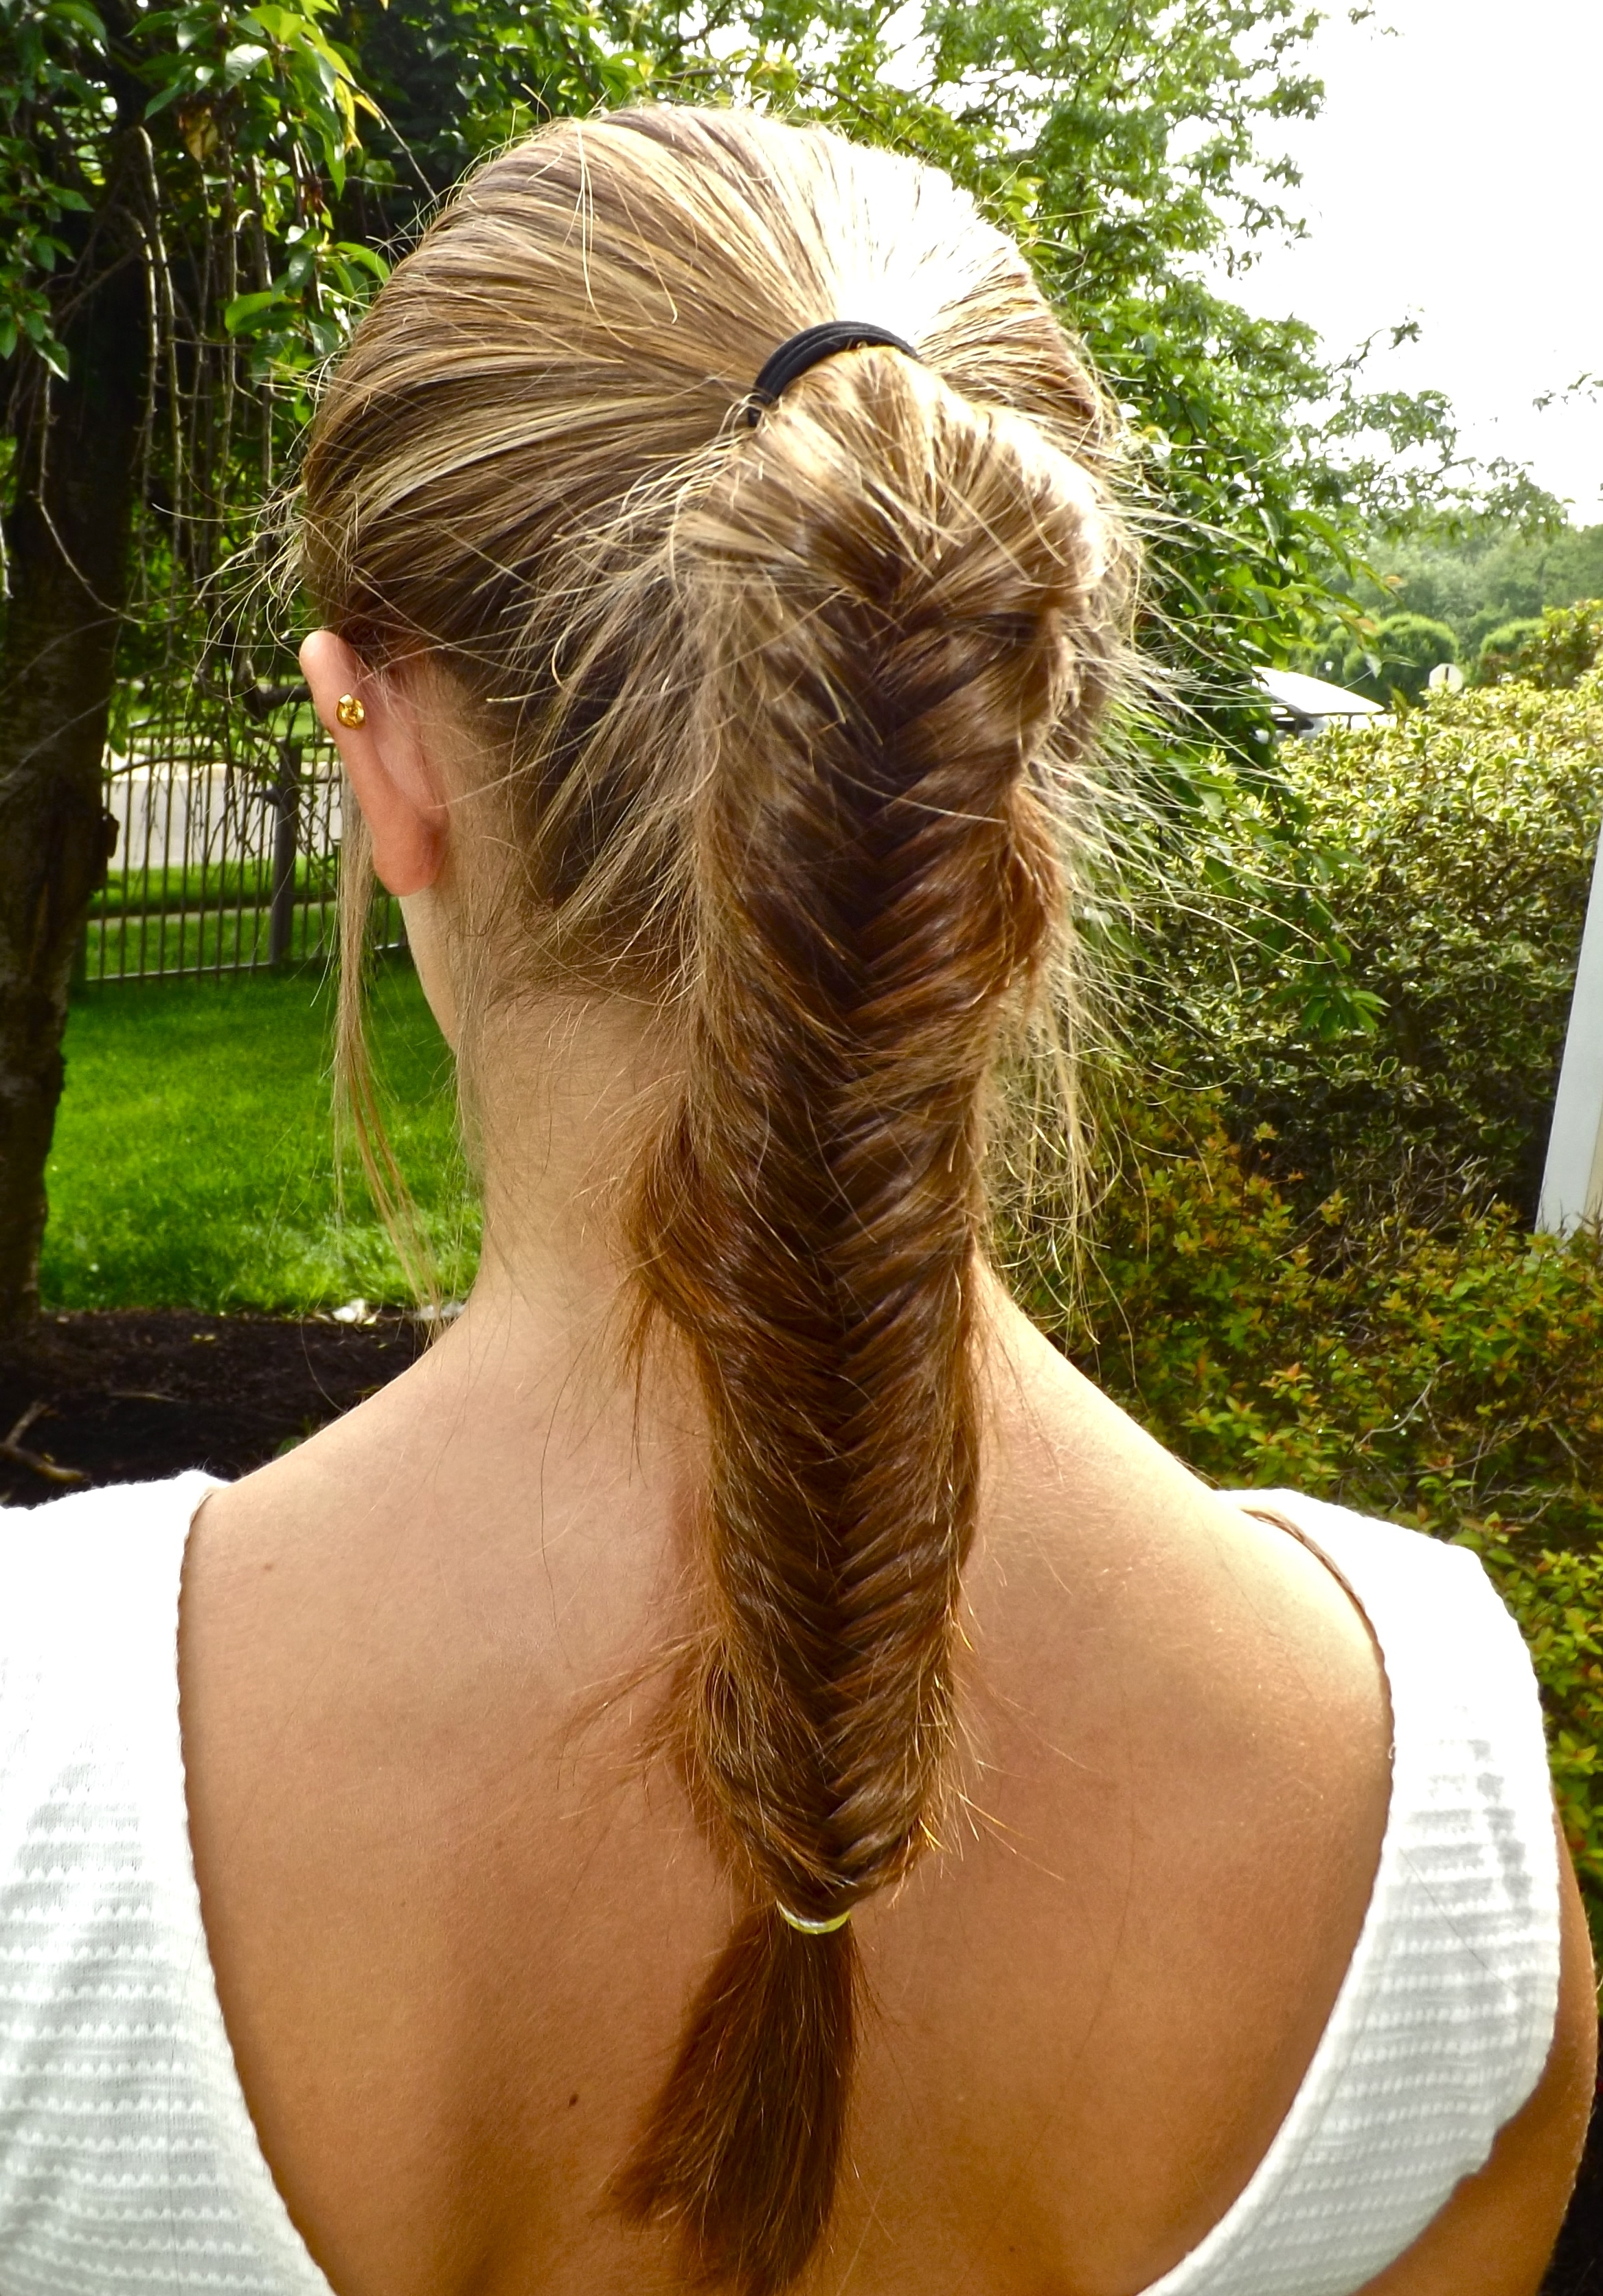 Favorite Fishtail Braid Ponytails For Out With The Old, In With The New: The Fishtail Braid (View 12 of 20)